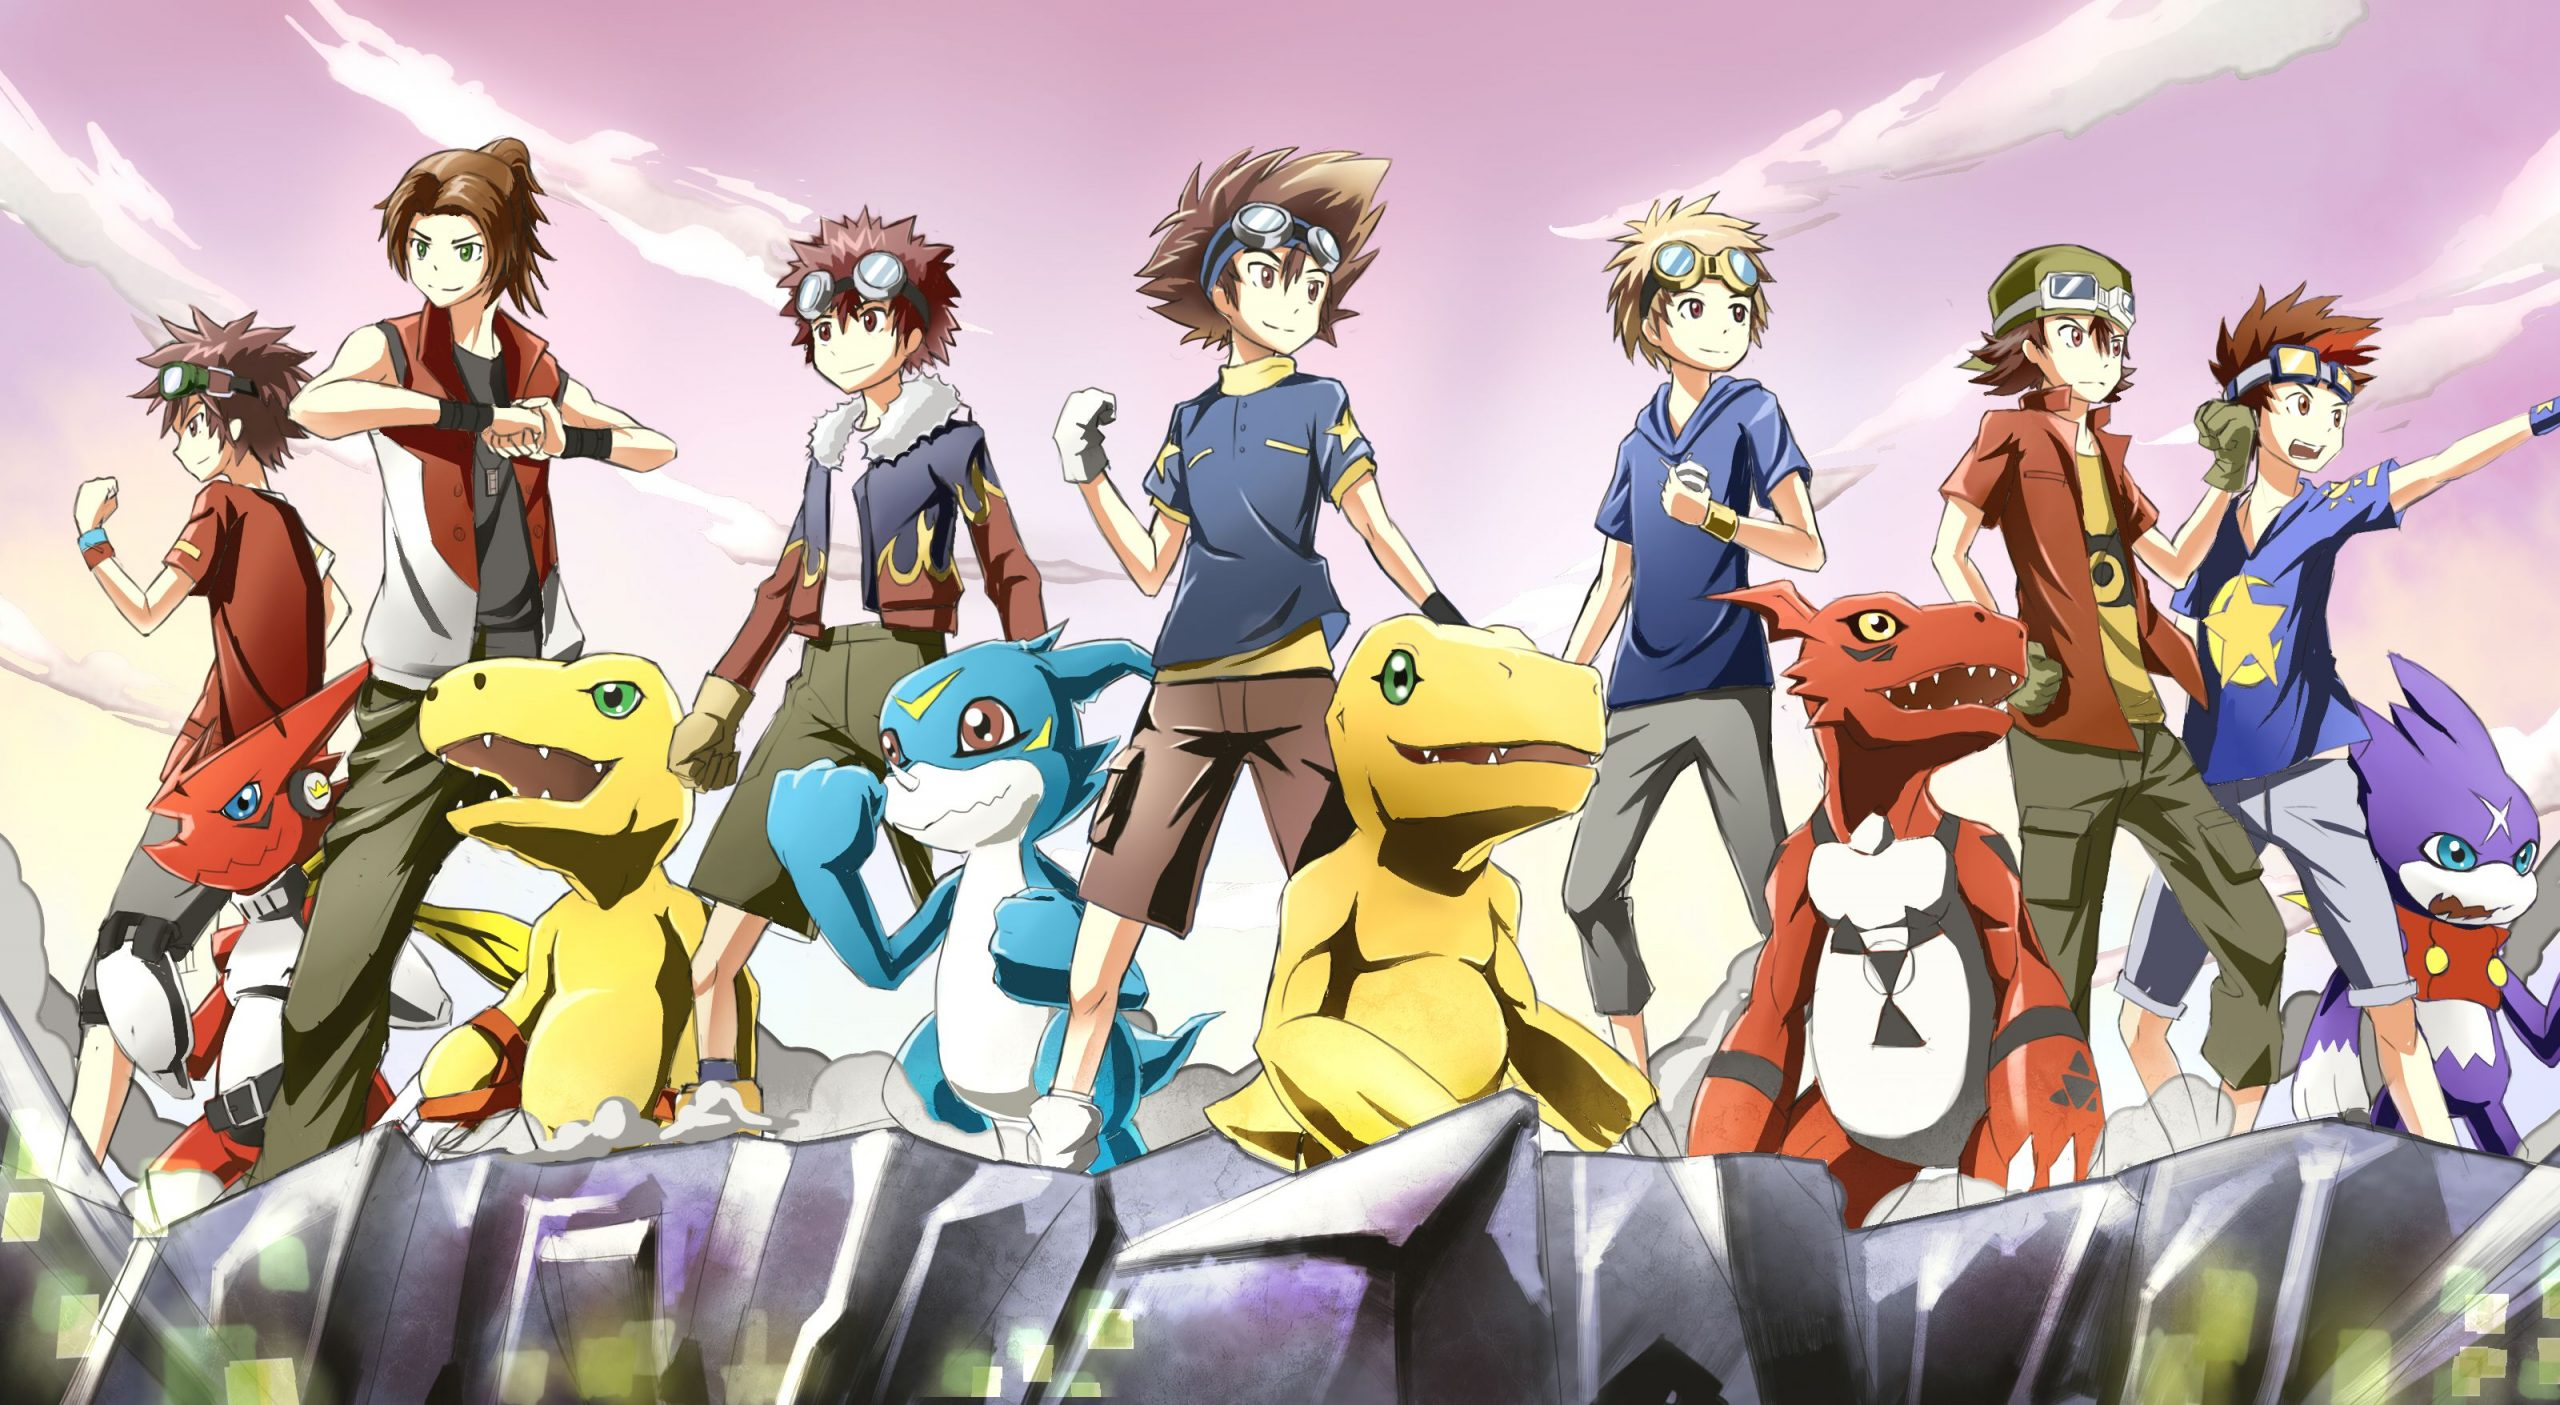 Digimon Adventure characters with their Digimons